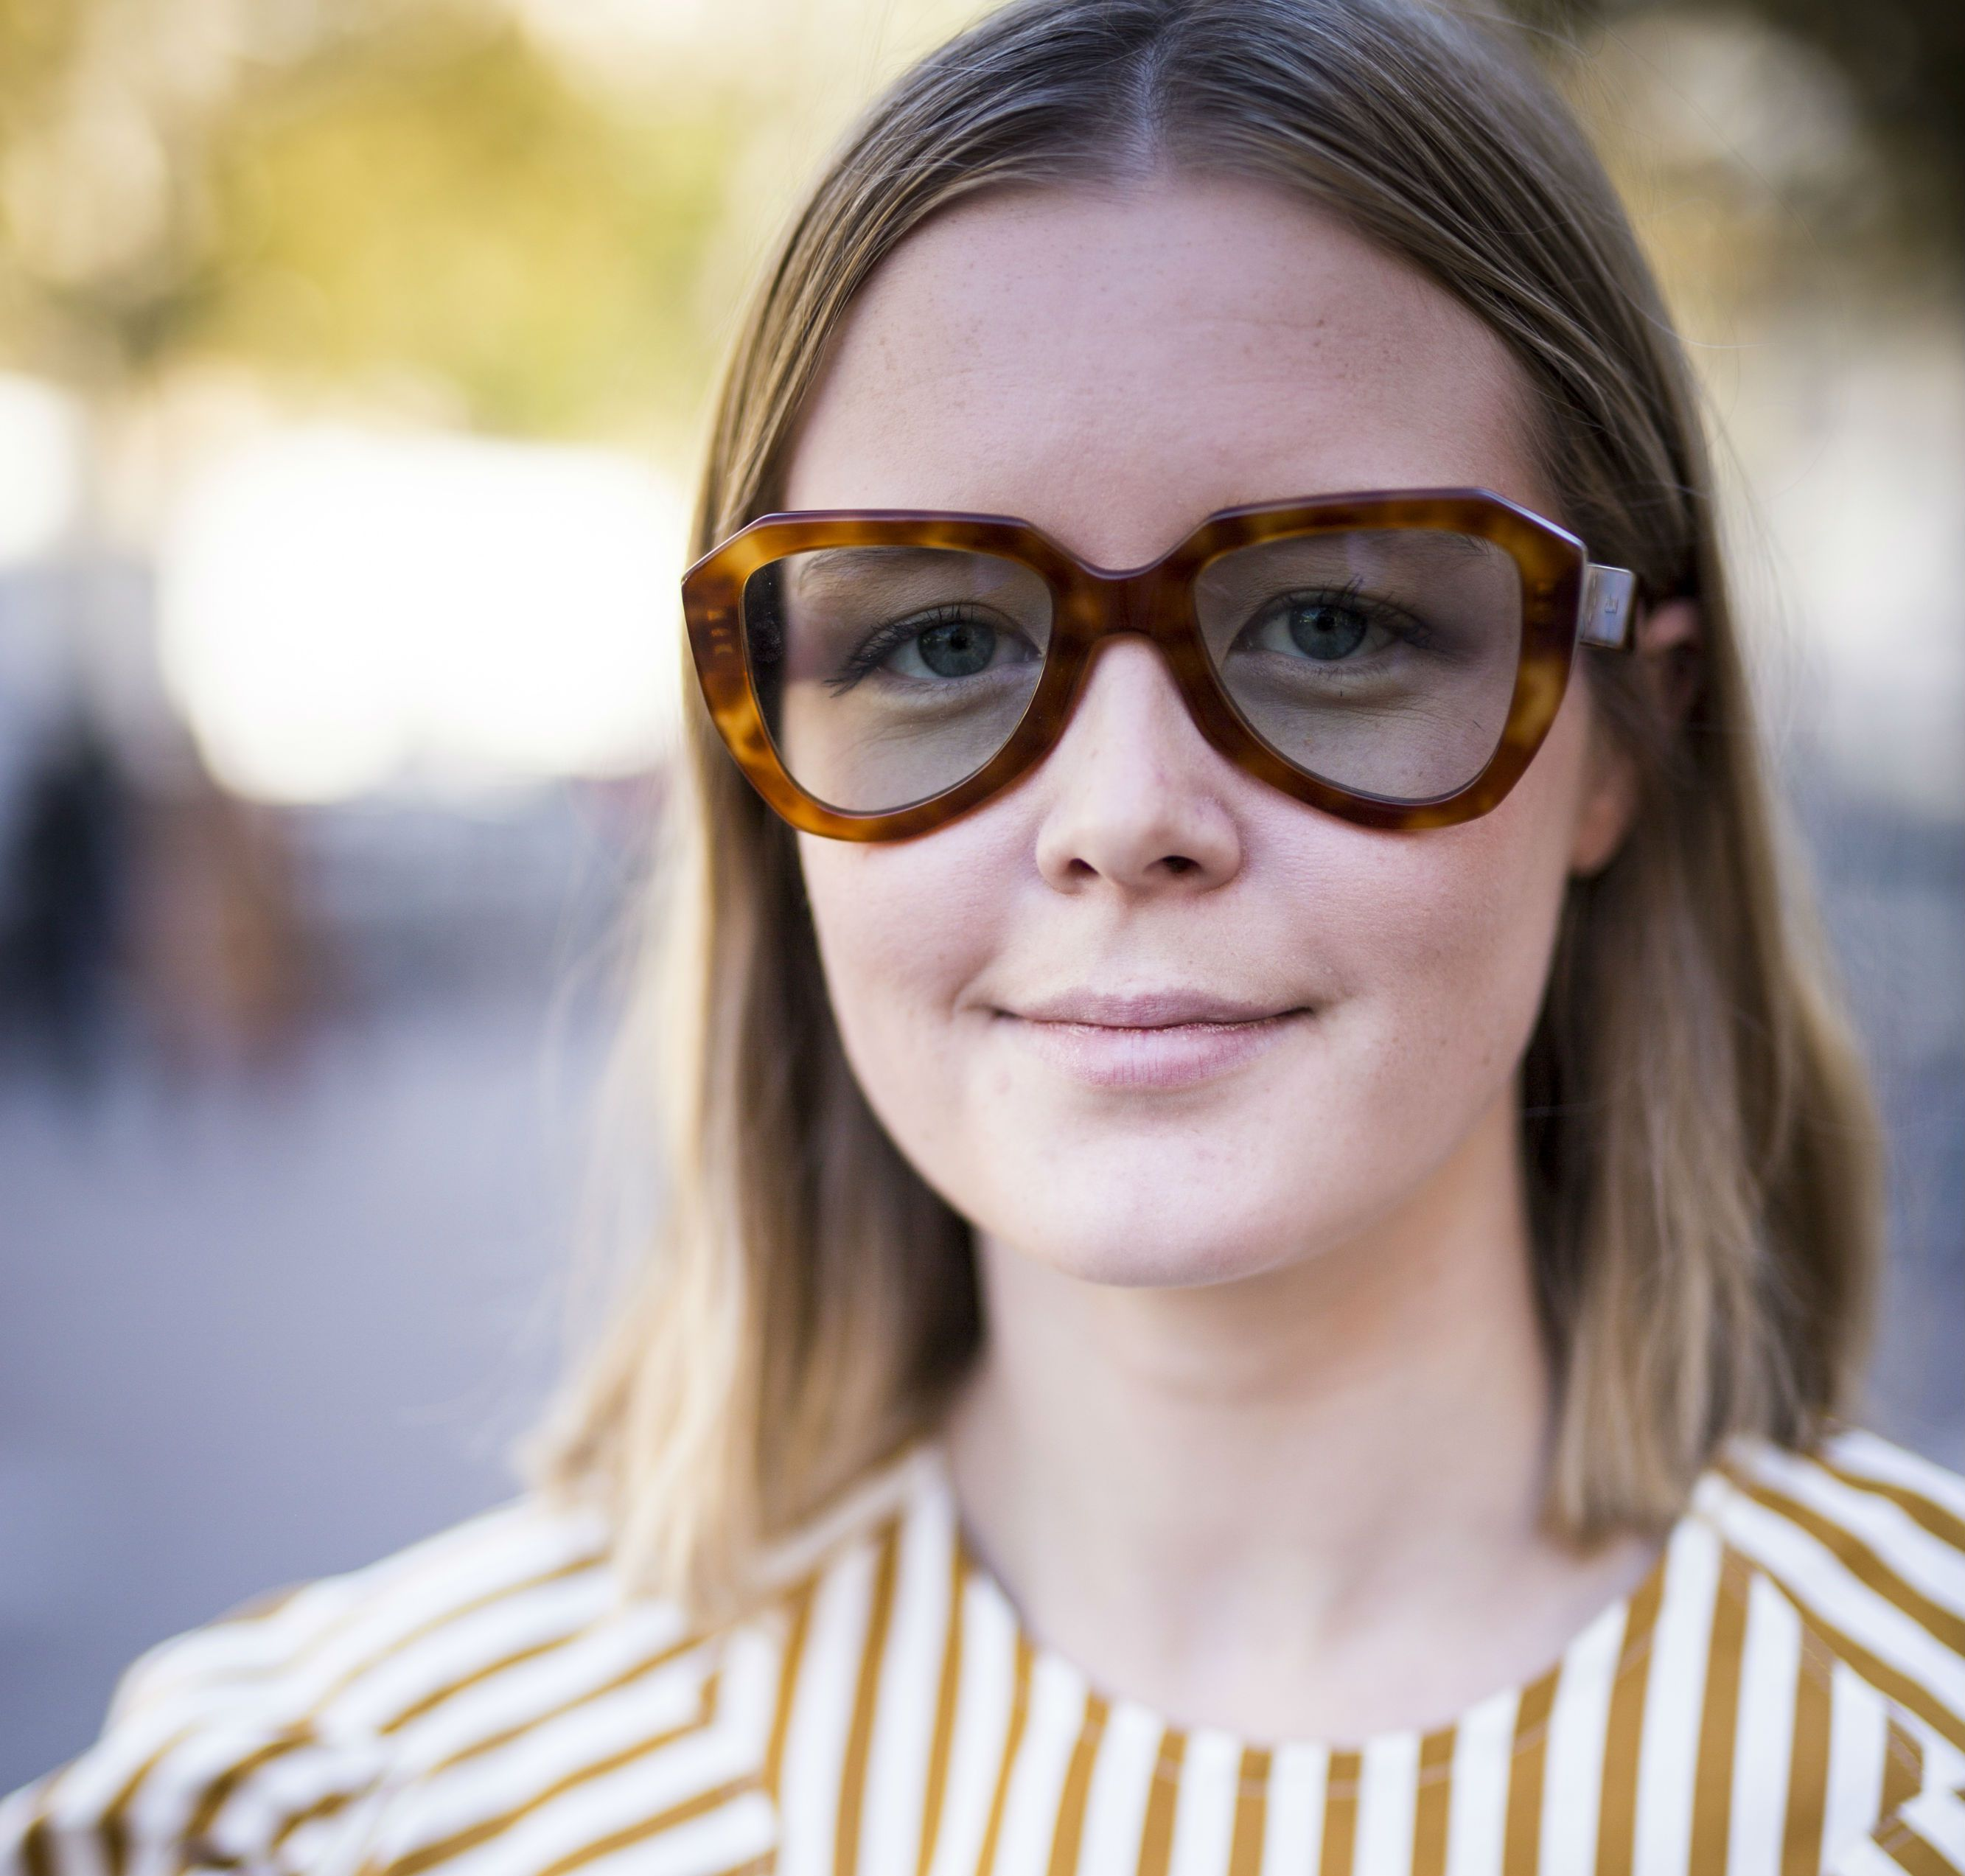 a0553dd020f The Trendy Sunglasses You ll Want to Buy in 2019